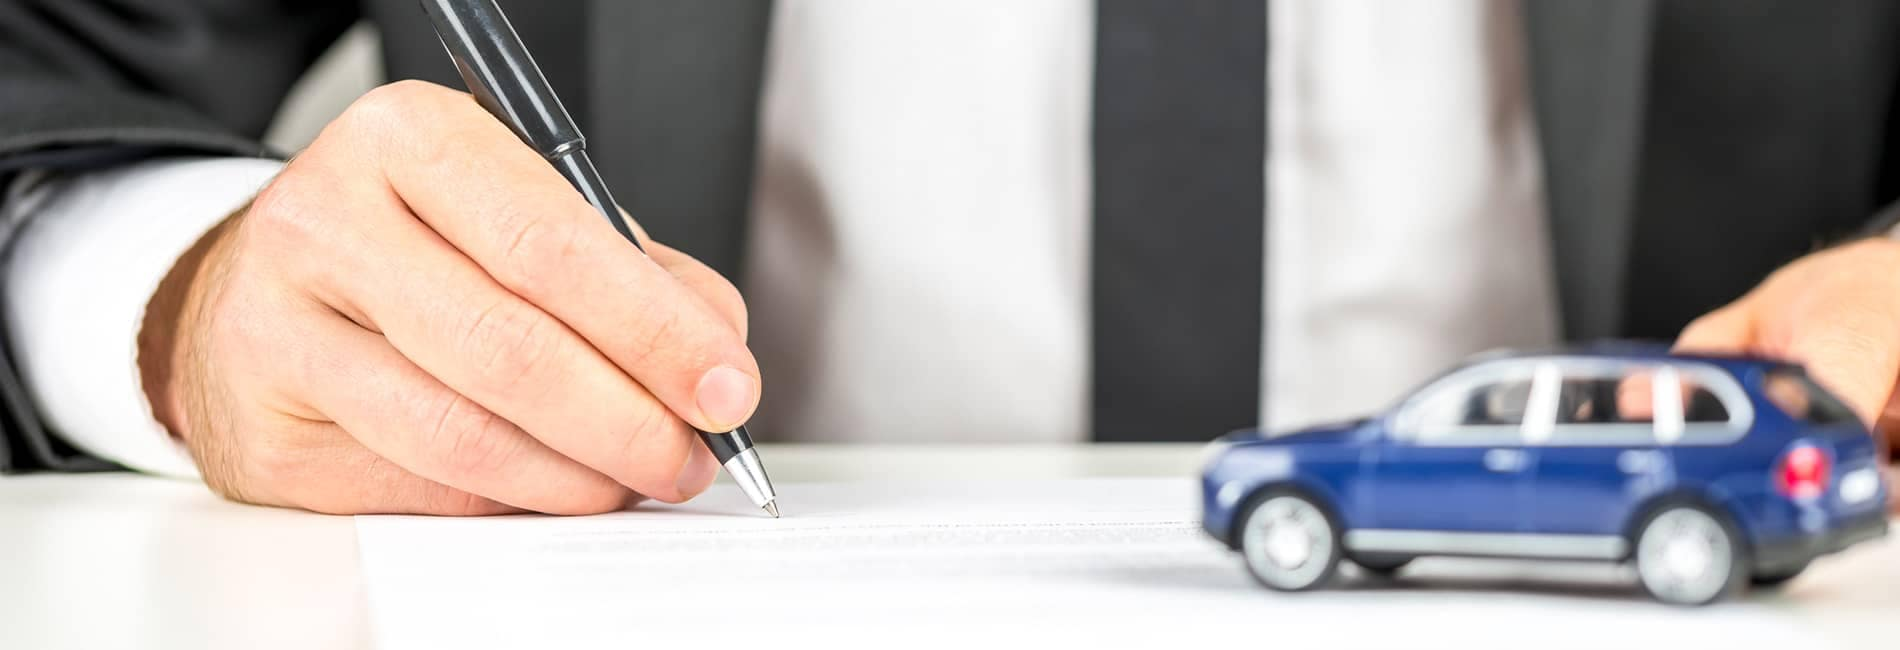 Man Signing Document with Blue Toy Car